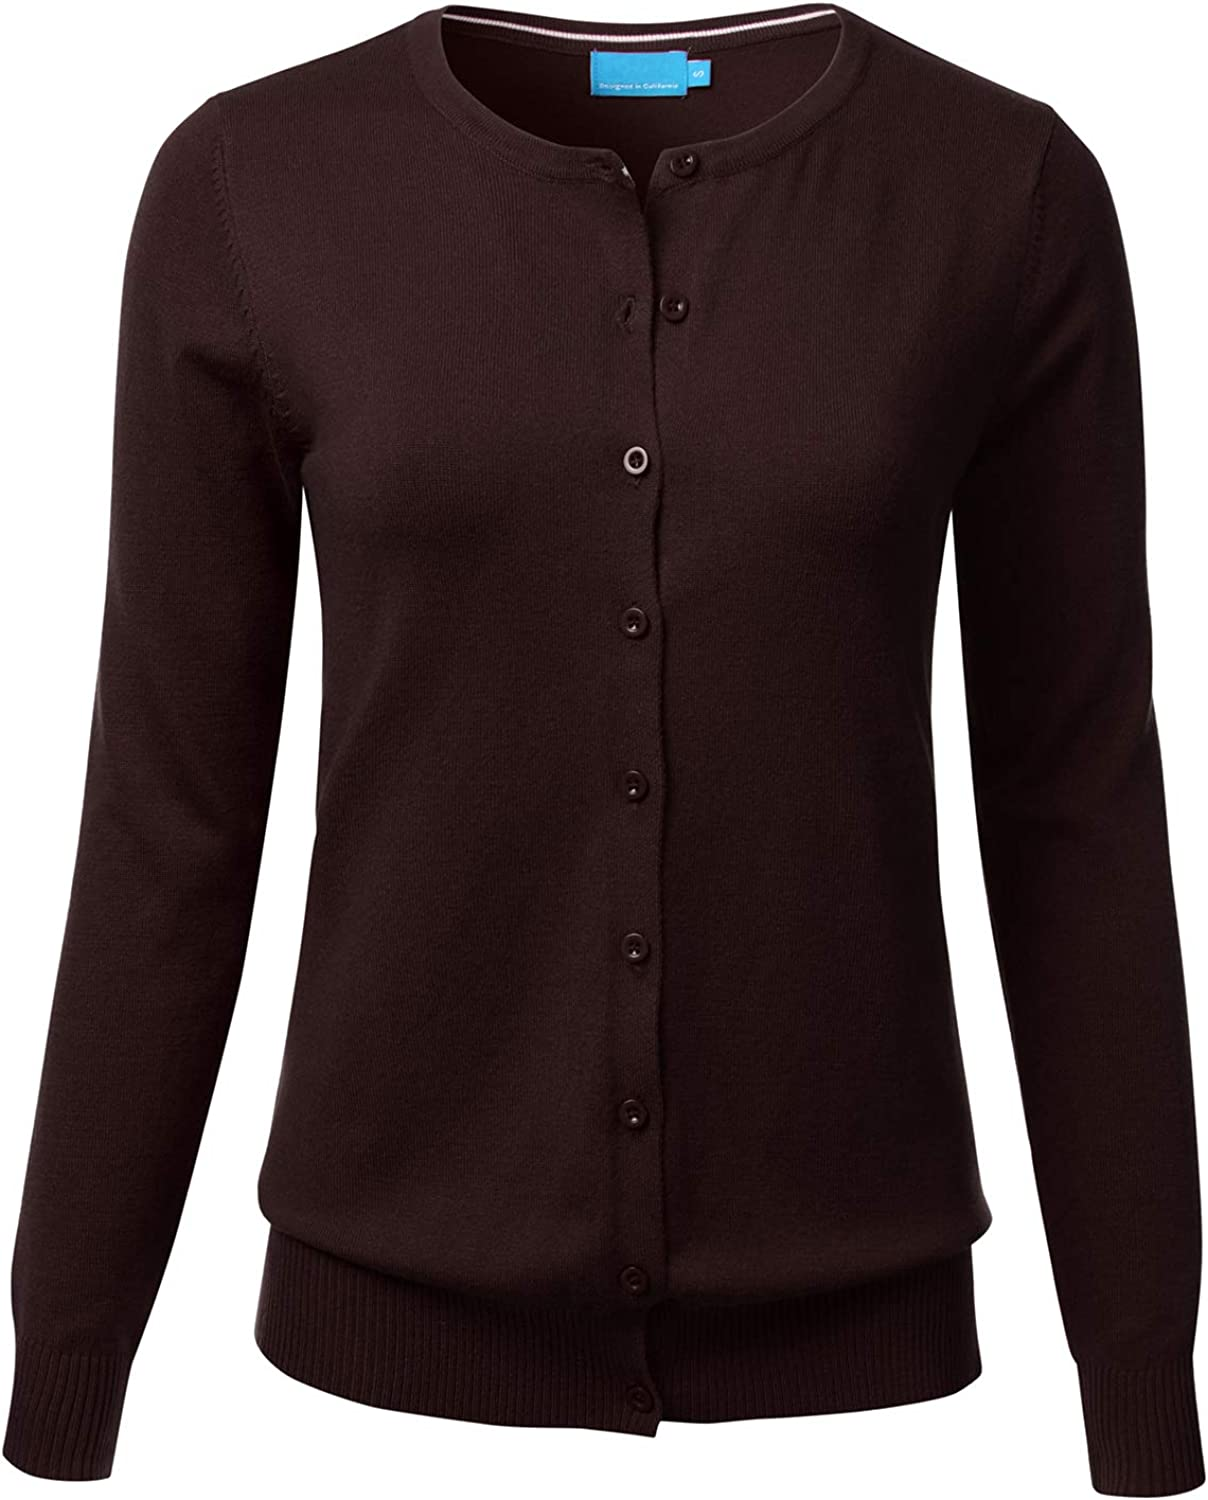 FLORIA Women's Button Down Crew Neck Long Sleeve Soft Knit Cardigan Sweater Brown M